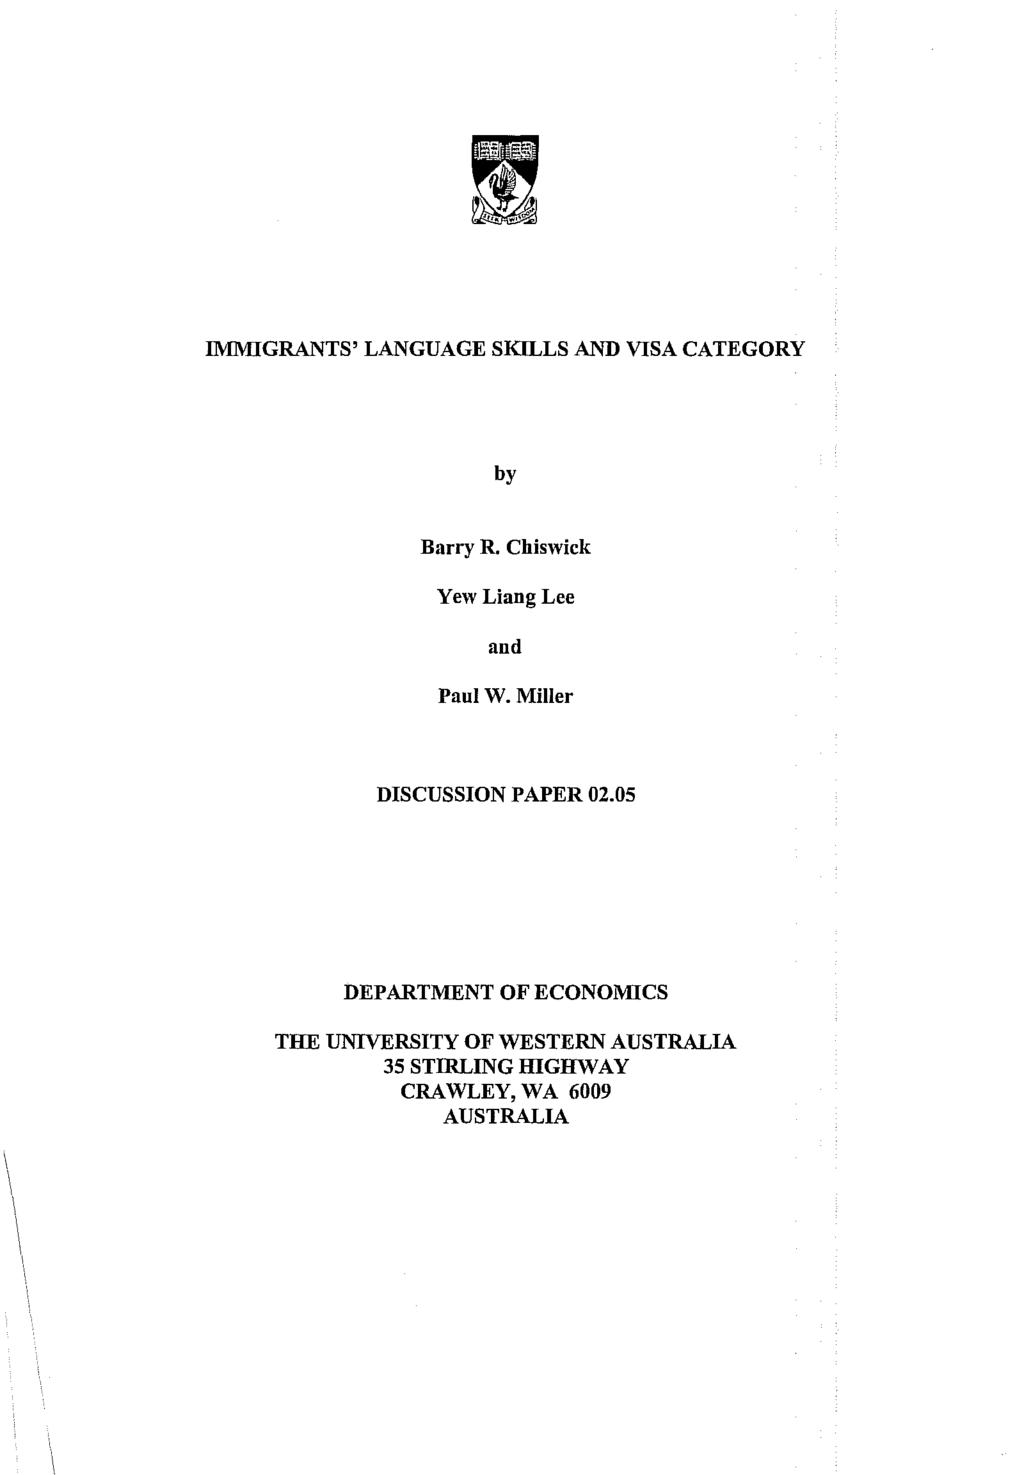 IMMIGRANTS' LANGUAGE SKILLS AND VISA CATEGORY by Barry R. Chiswick Yew Liang Lee and Paul W.